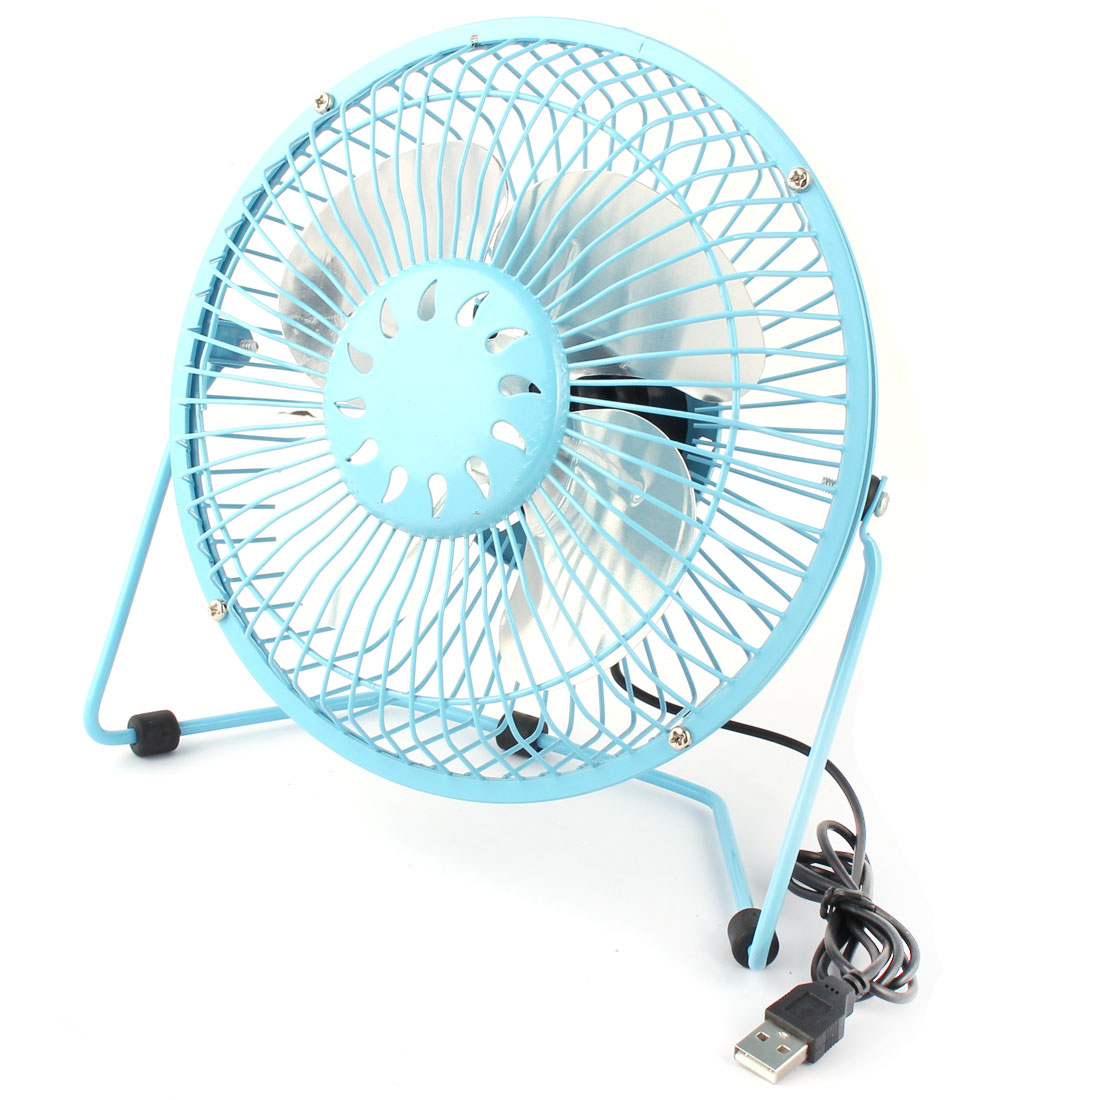 Computer Notebook Laptop Metal Portable USB Mini Cooler Cooling Fan Blue